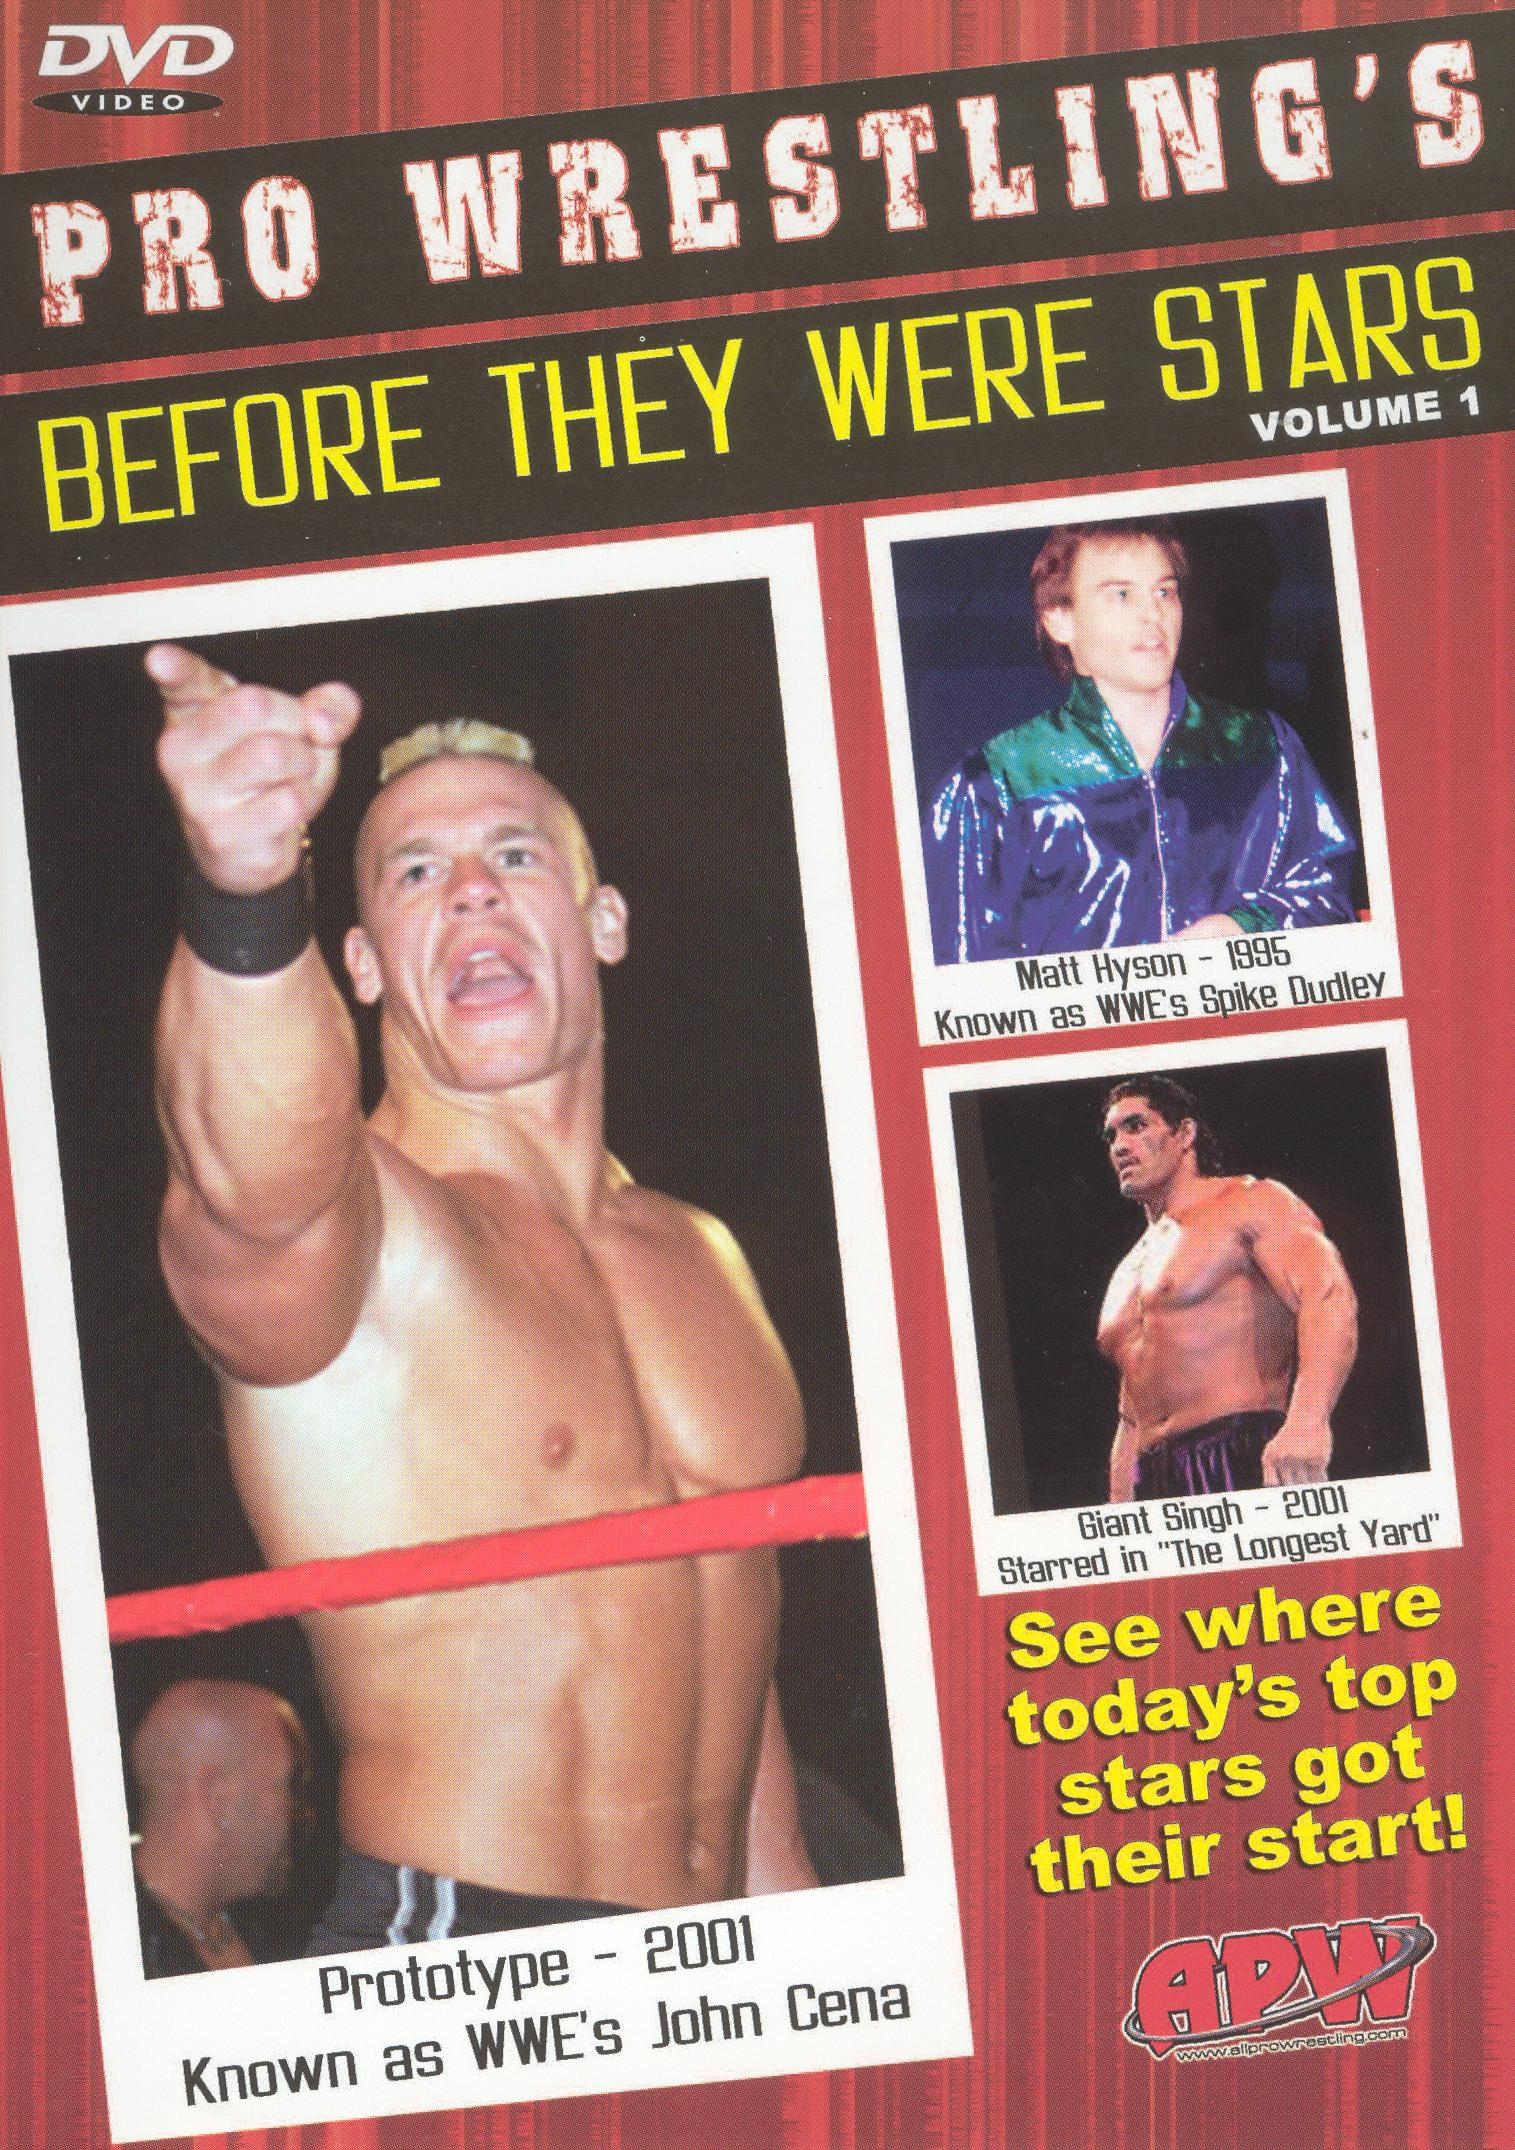 Pro Wrestling's Before They Were Stars